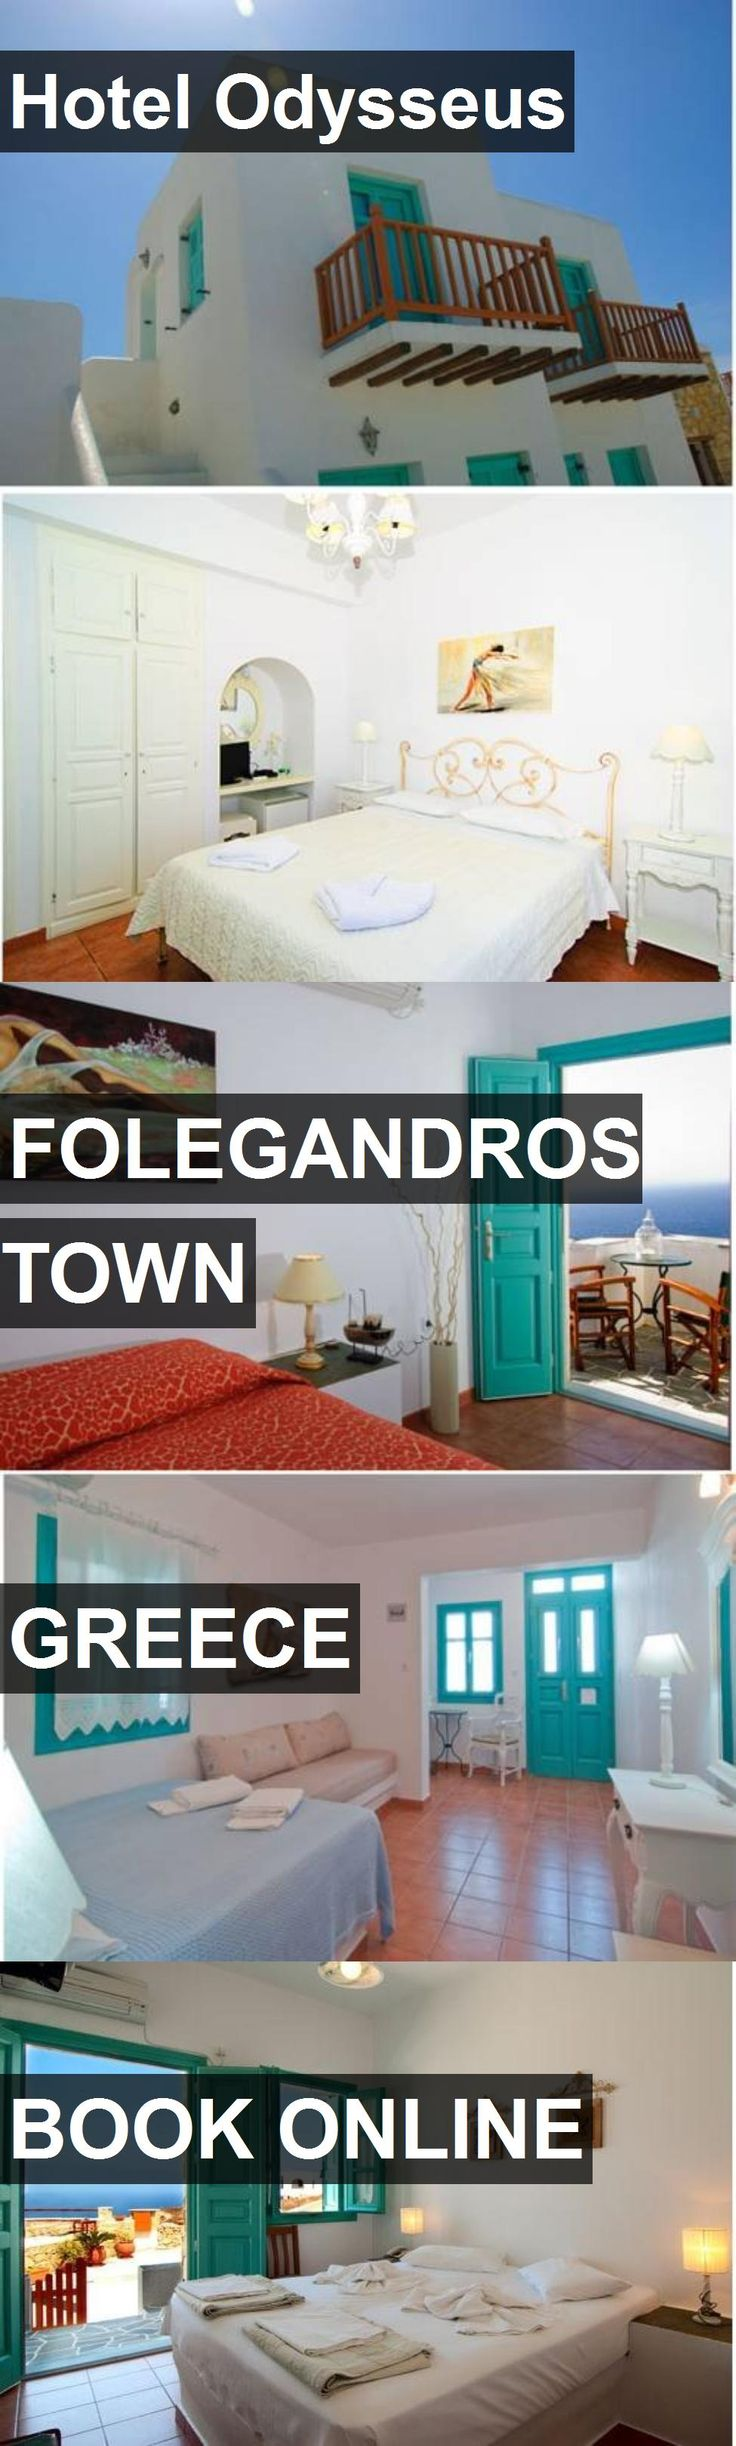 Hotel Odysseus in Folegandros Town, Greece. For more information, photos, reviews and best prices please follow the link. #Greece #FolegandrosTown #travel #vacation #hotel